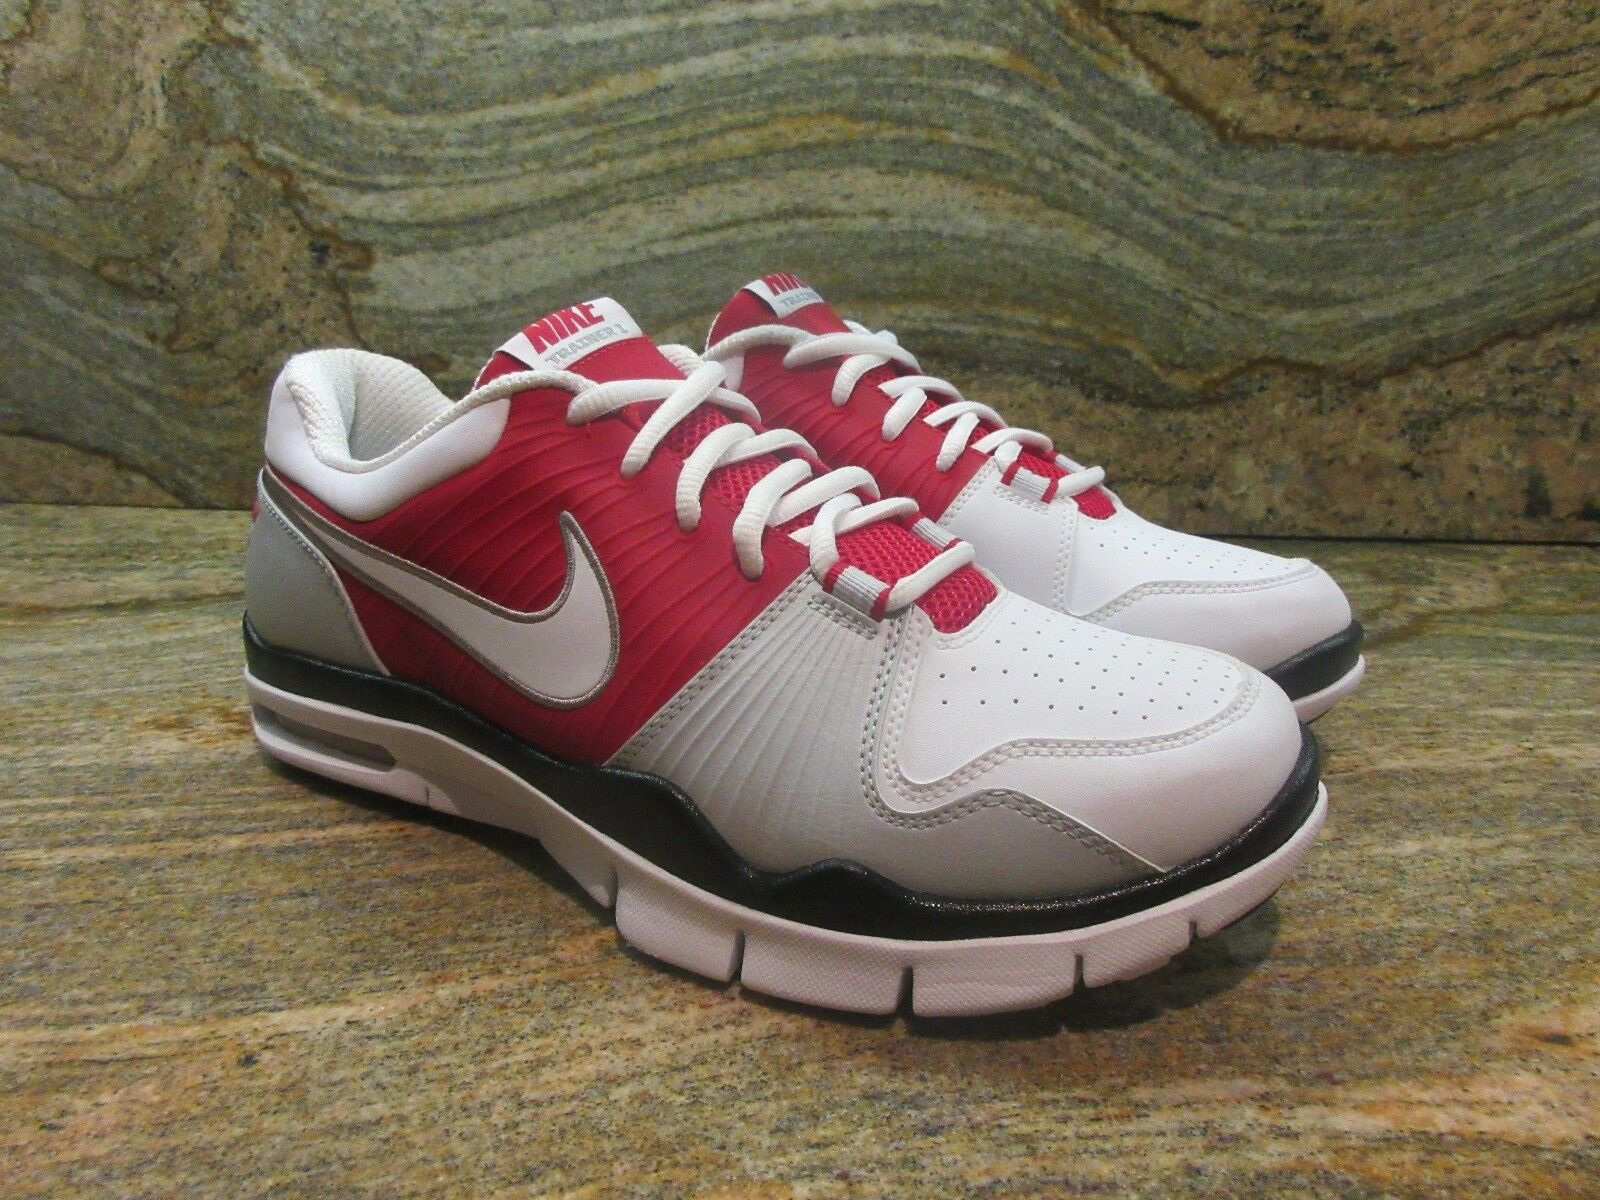 2009 Nike Air Trainer 1 Low SL Sample SZ 9 Ohio Sate OSU Buckeyes Red 386489-611